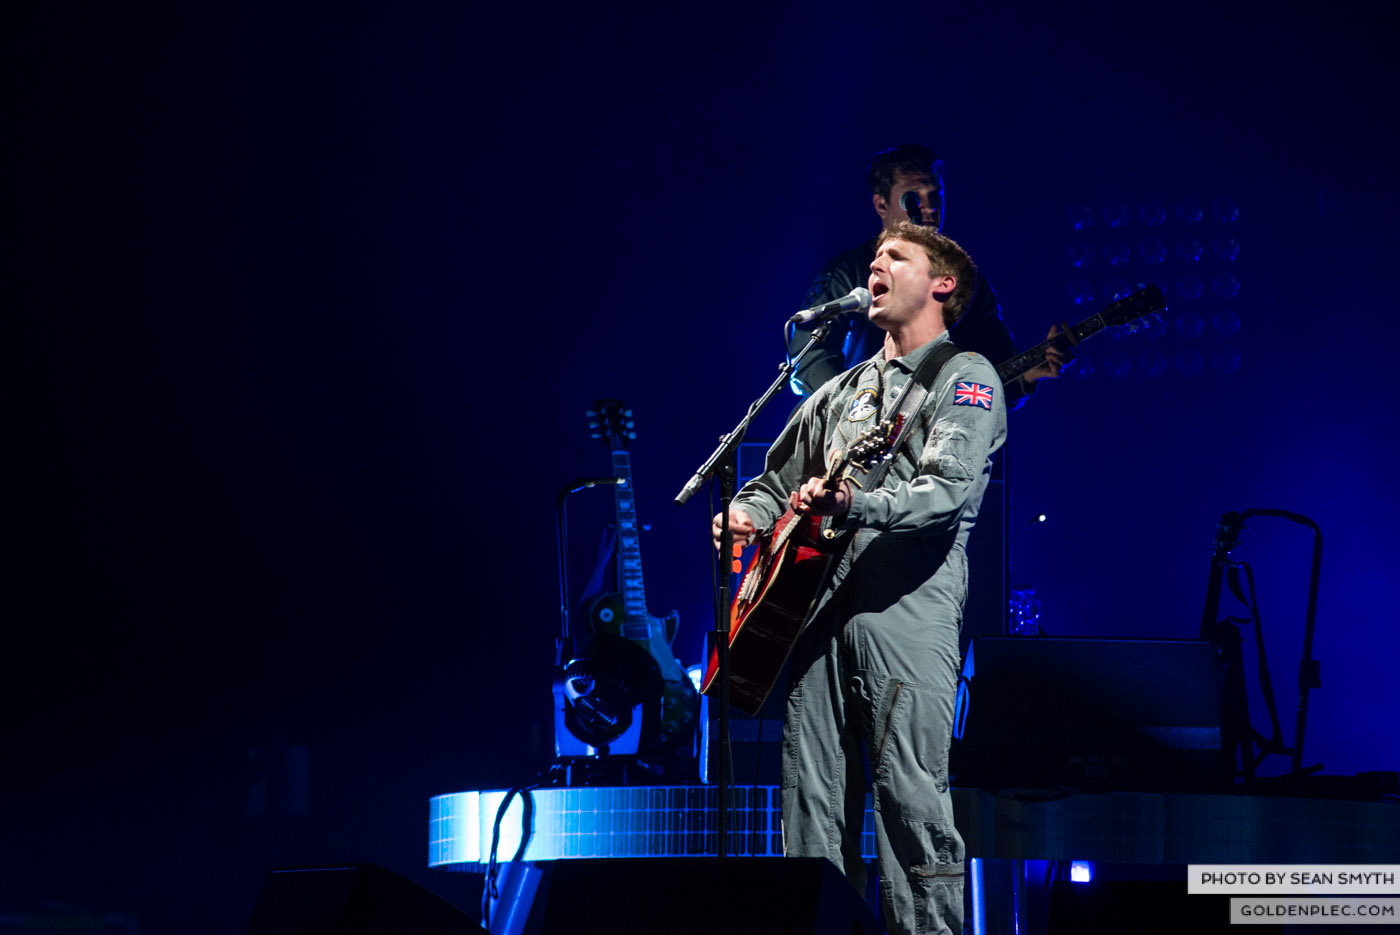 james-blunt-at-3arena-by-sean-smyth-20-11-14-22-of-29